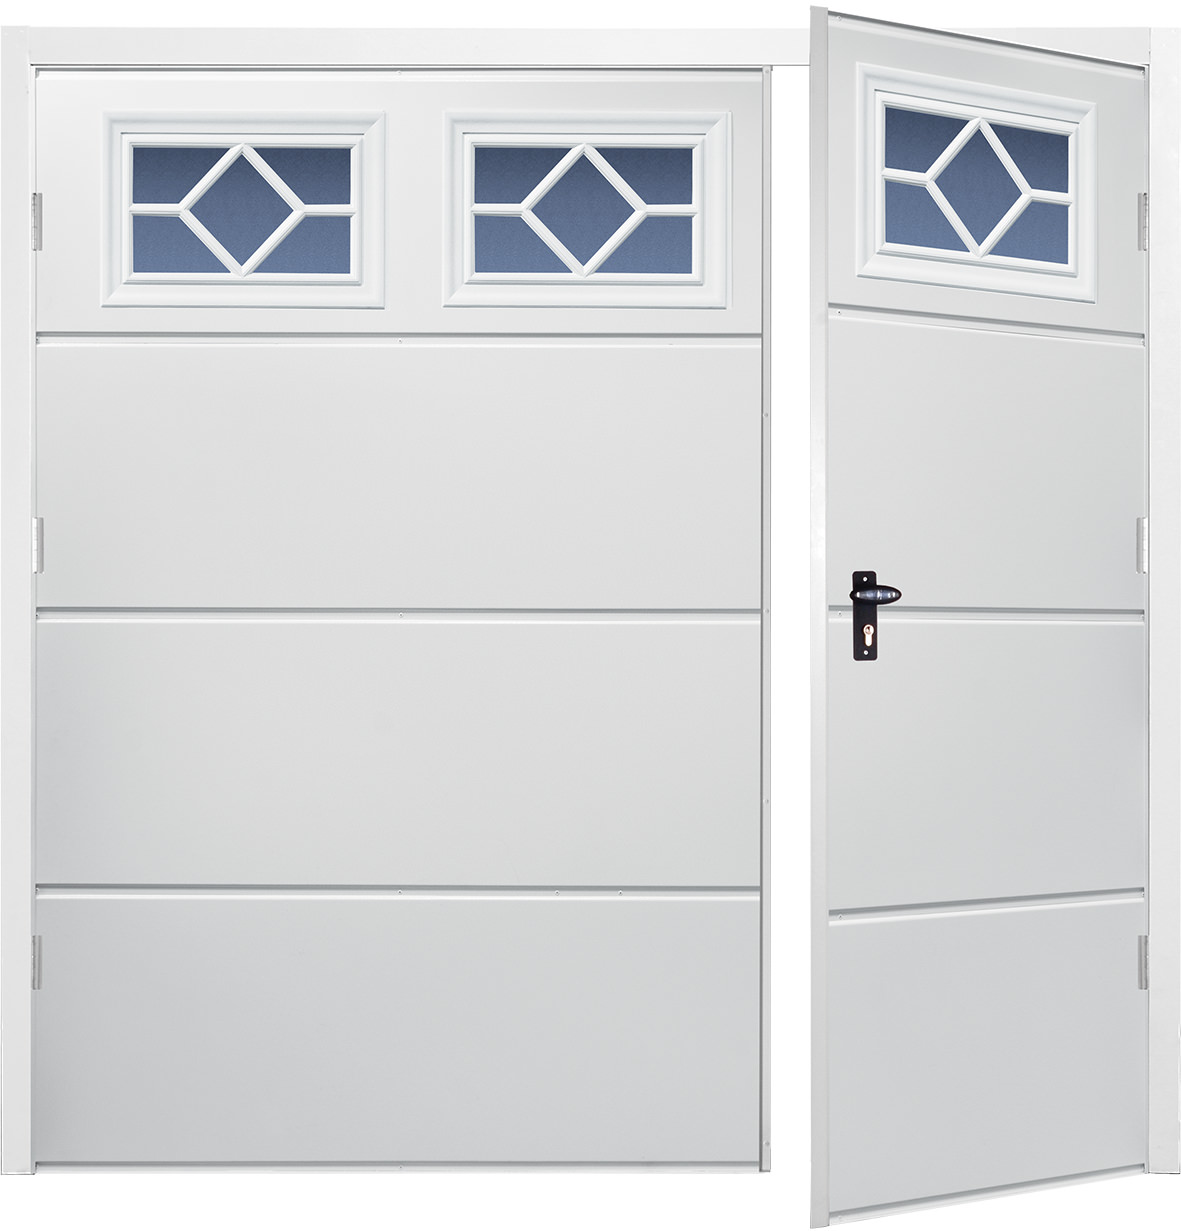 Side hinged frame wide rib horizontal white the garage for Garage side door and frame